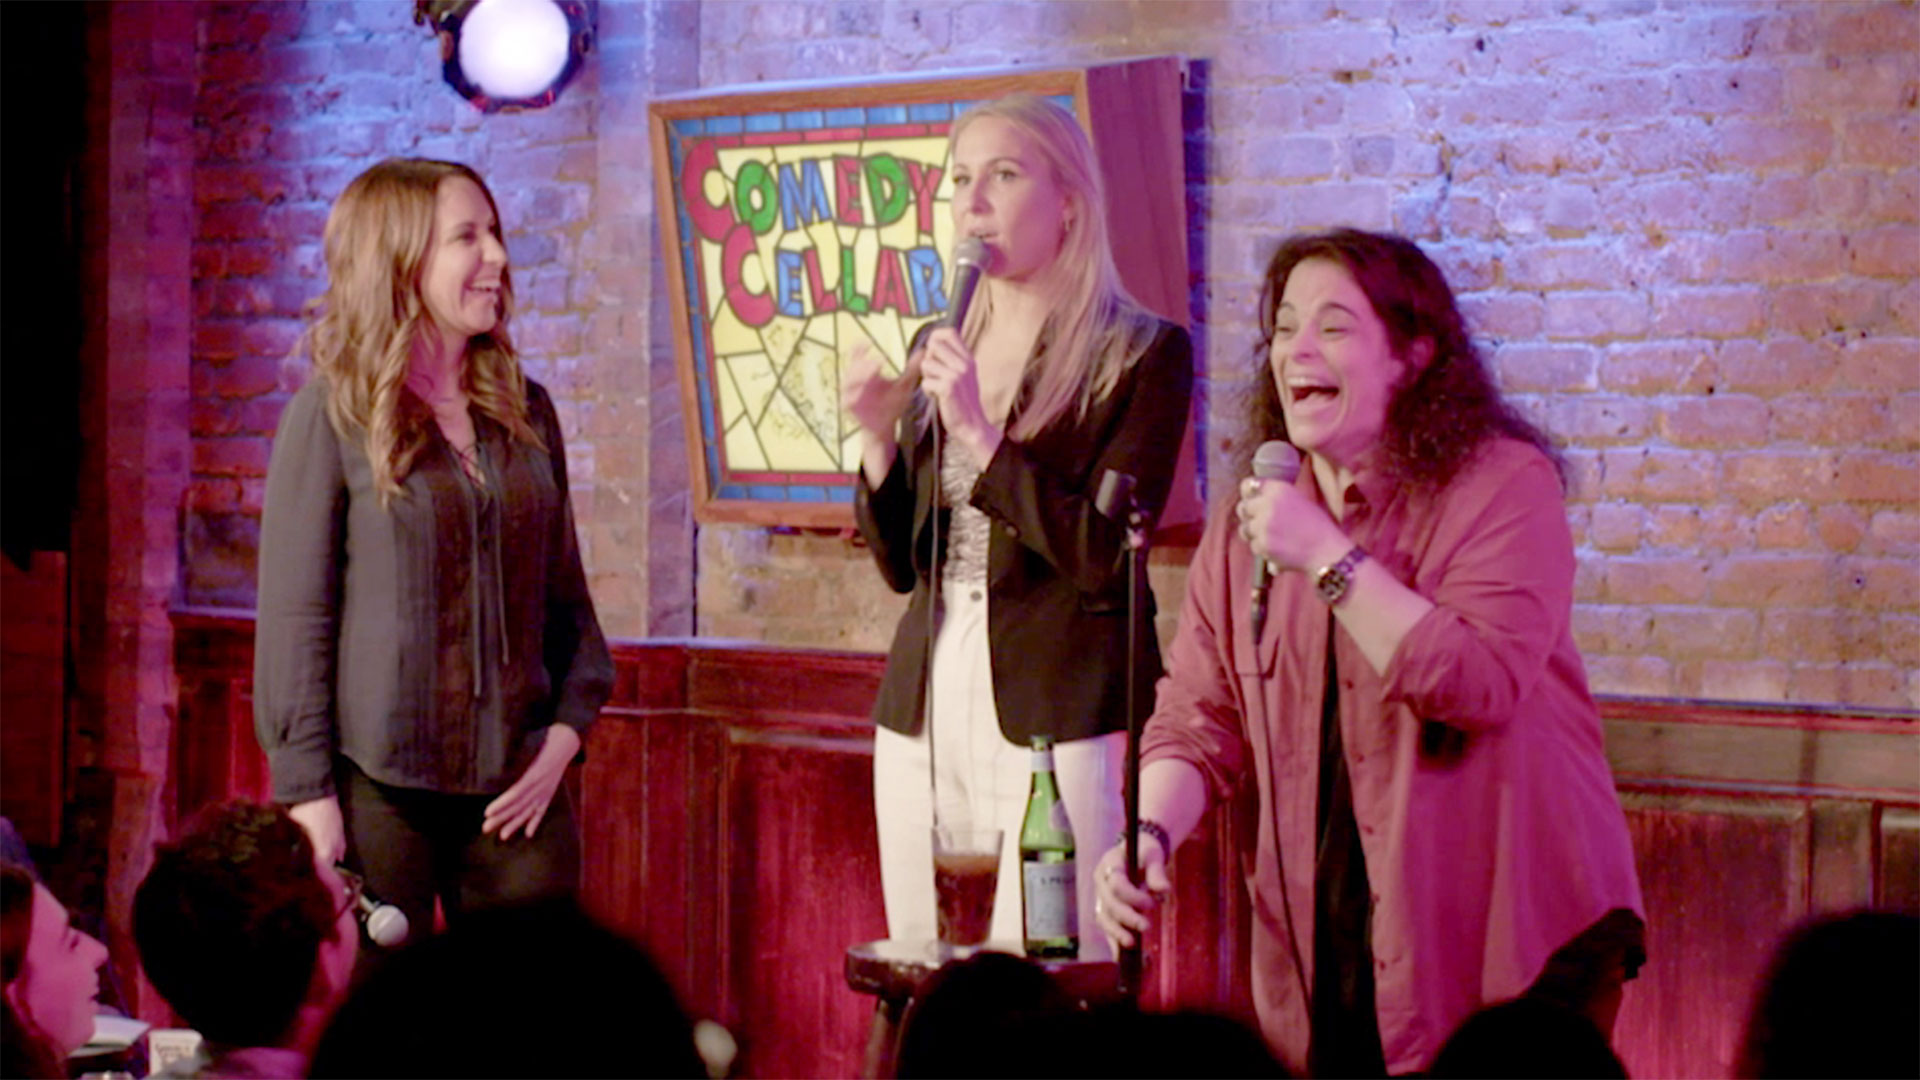 Watch Hysterical Official Trailer